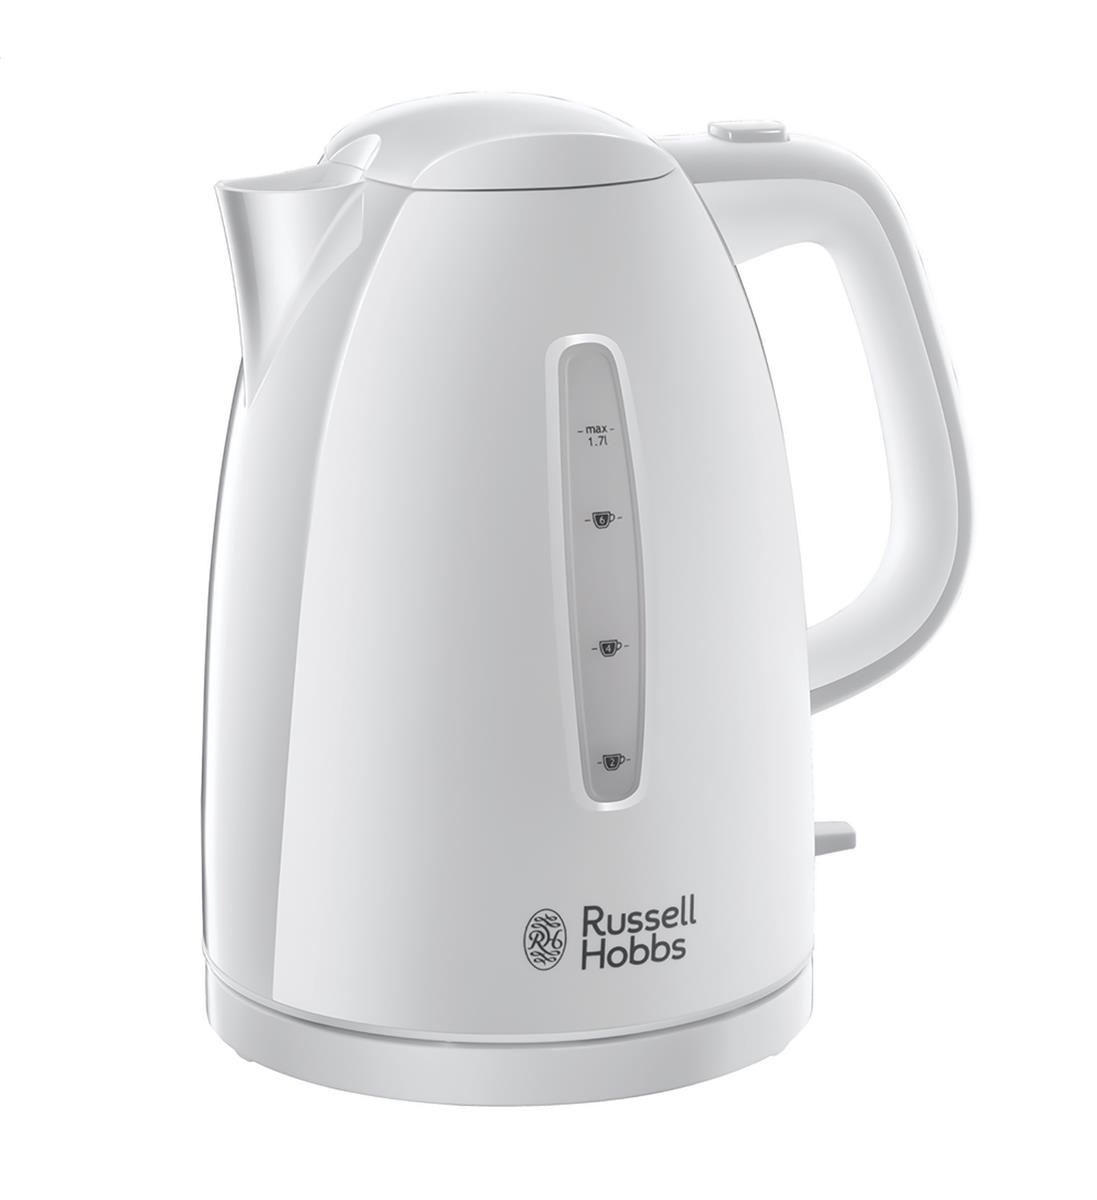 Brabantia Kettle 1.7L 3000W 360 Degrees Rotation Auto-off Safety Lid White Ref RH2127